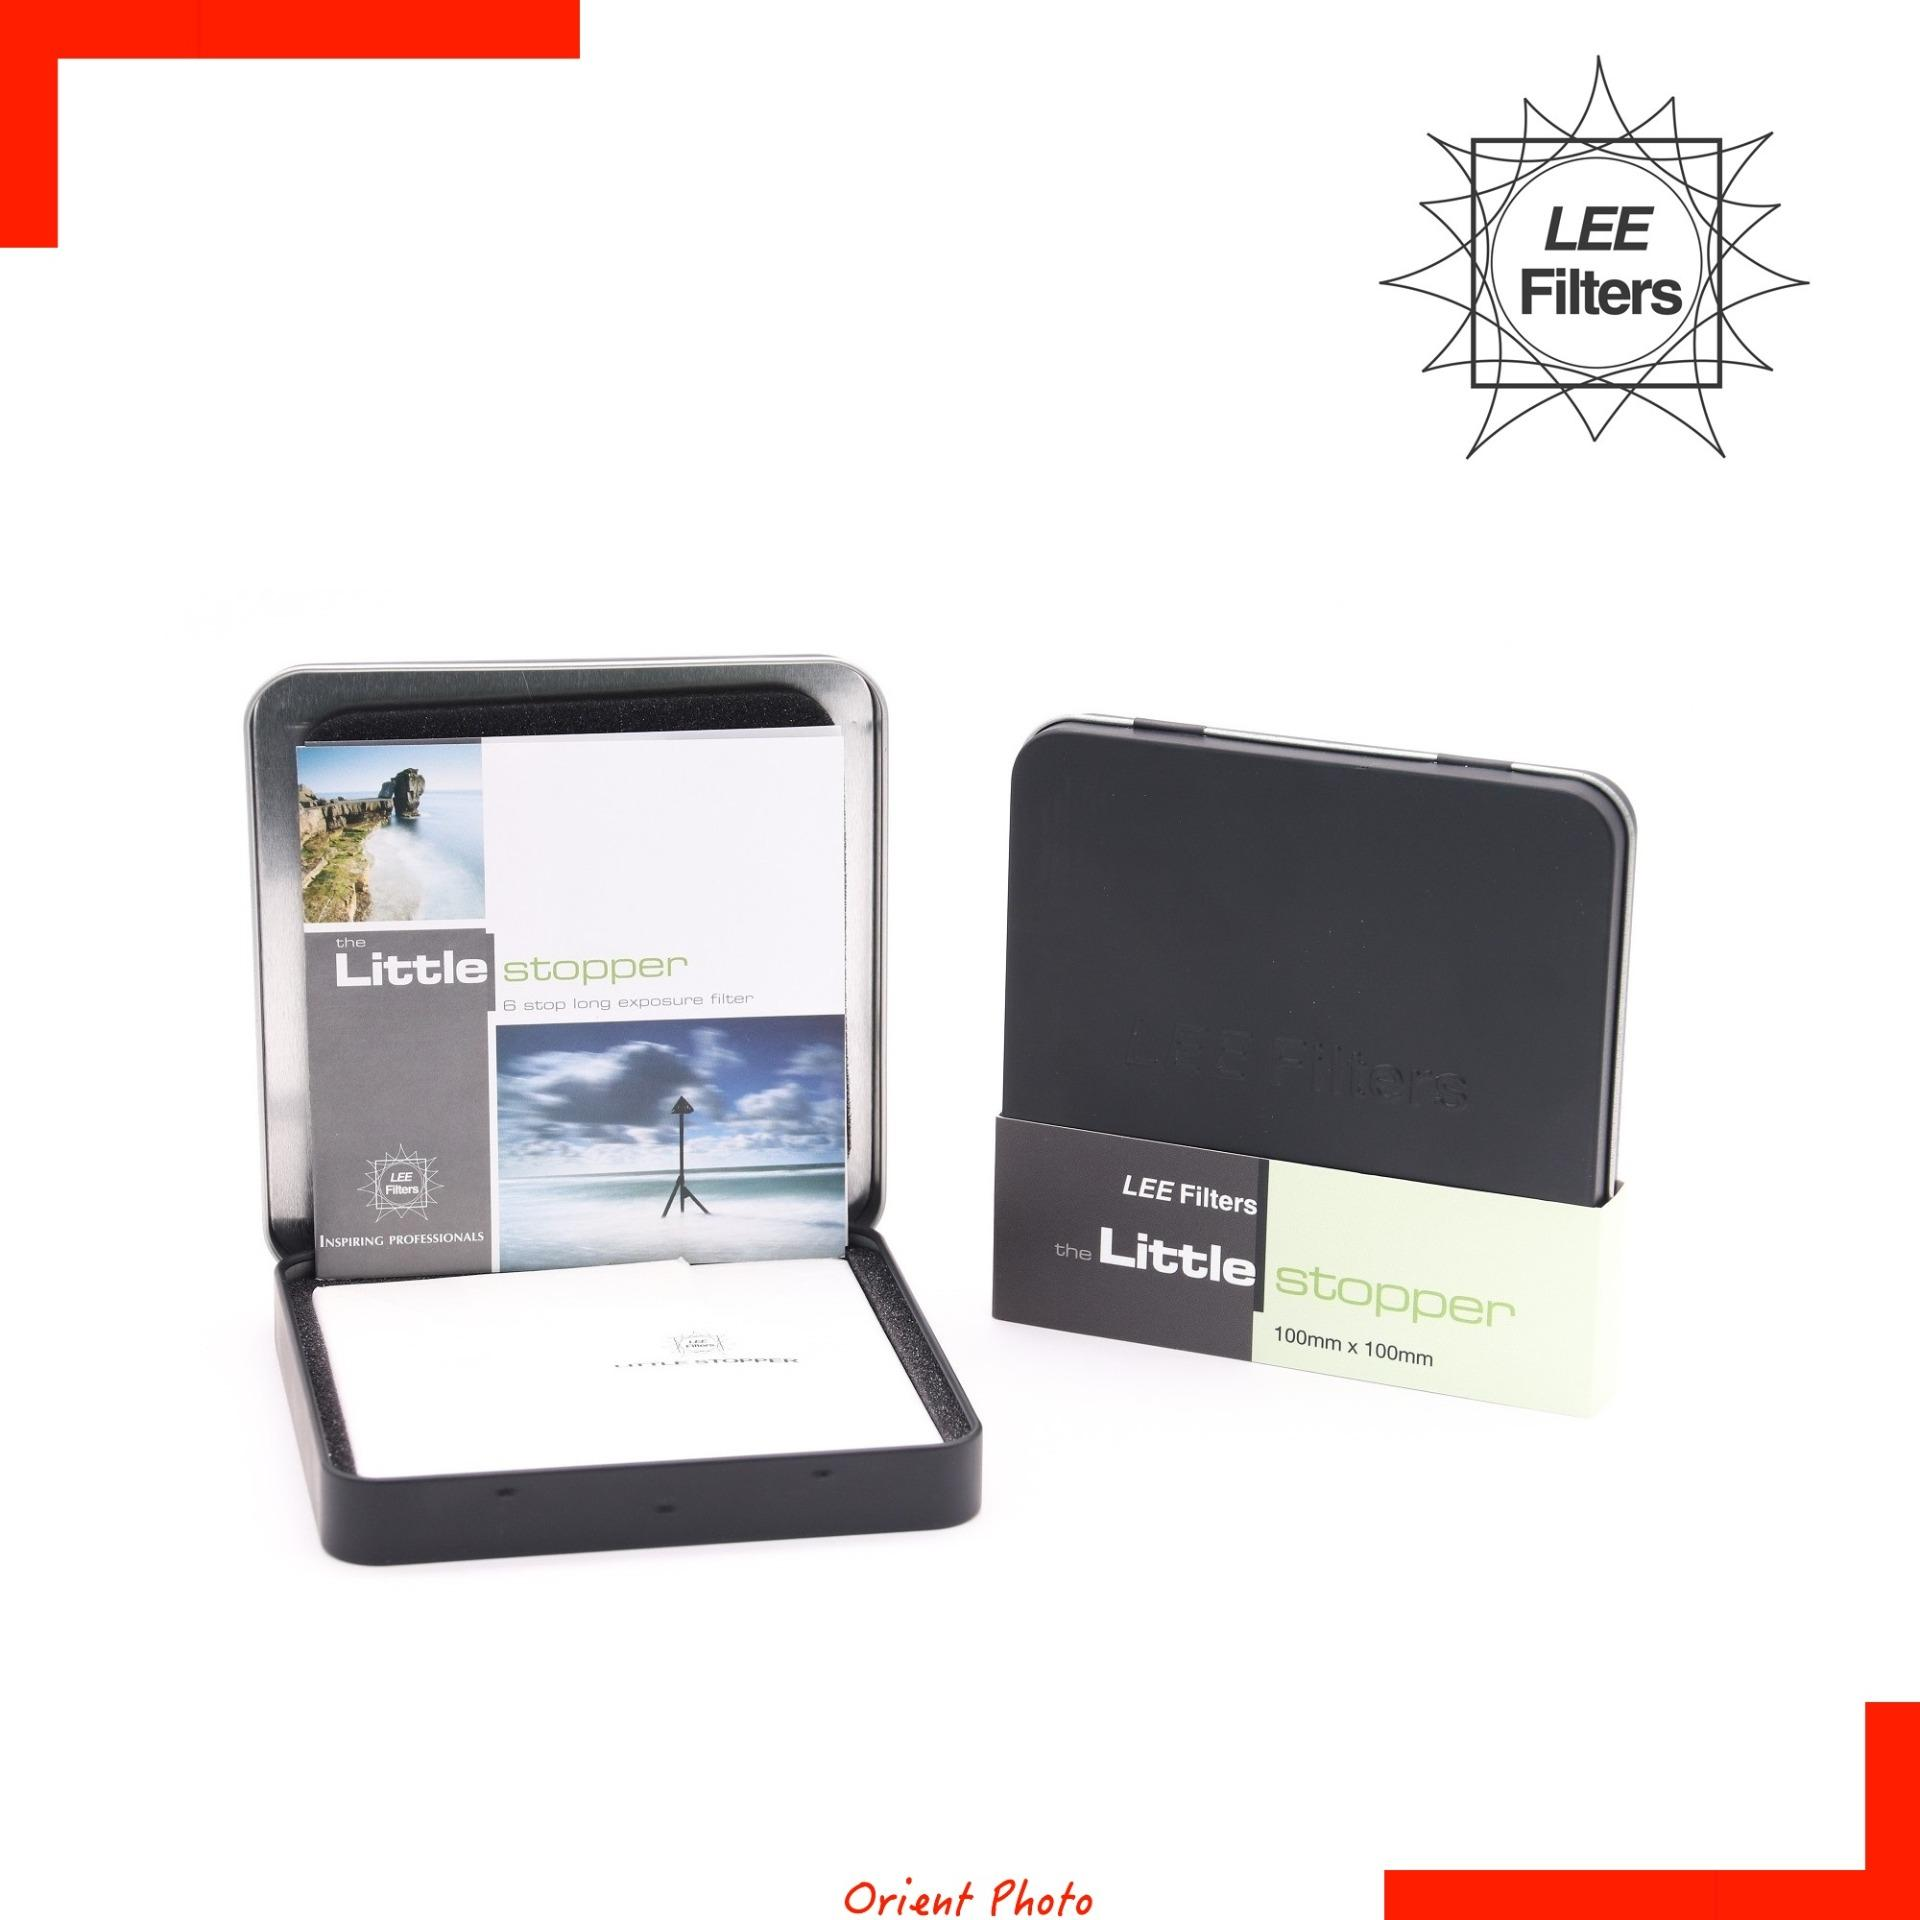 Buy LEE Filters Top Products Online | lazada sg